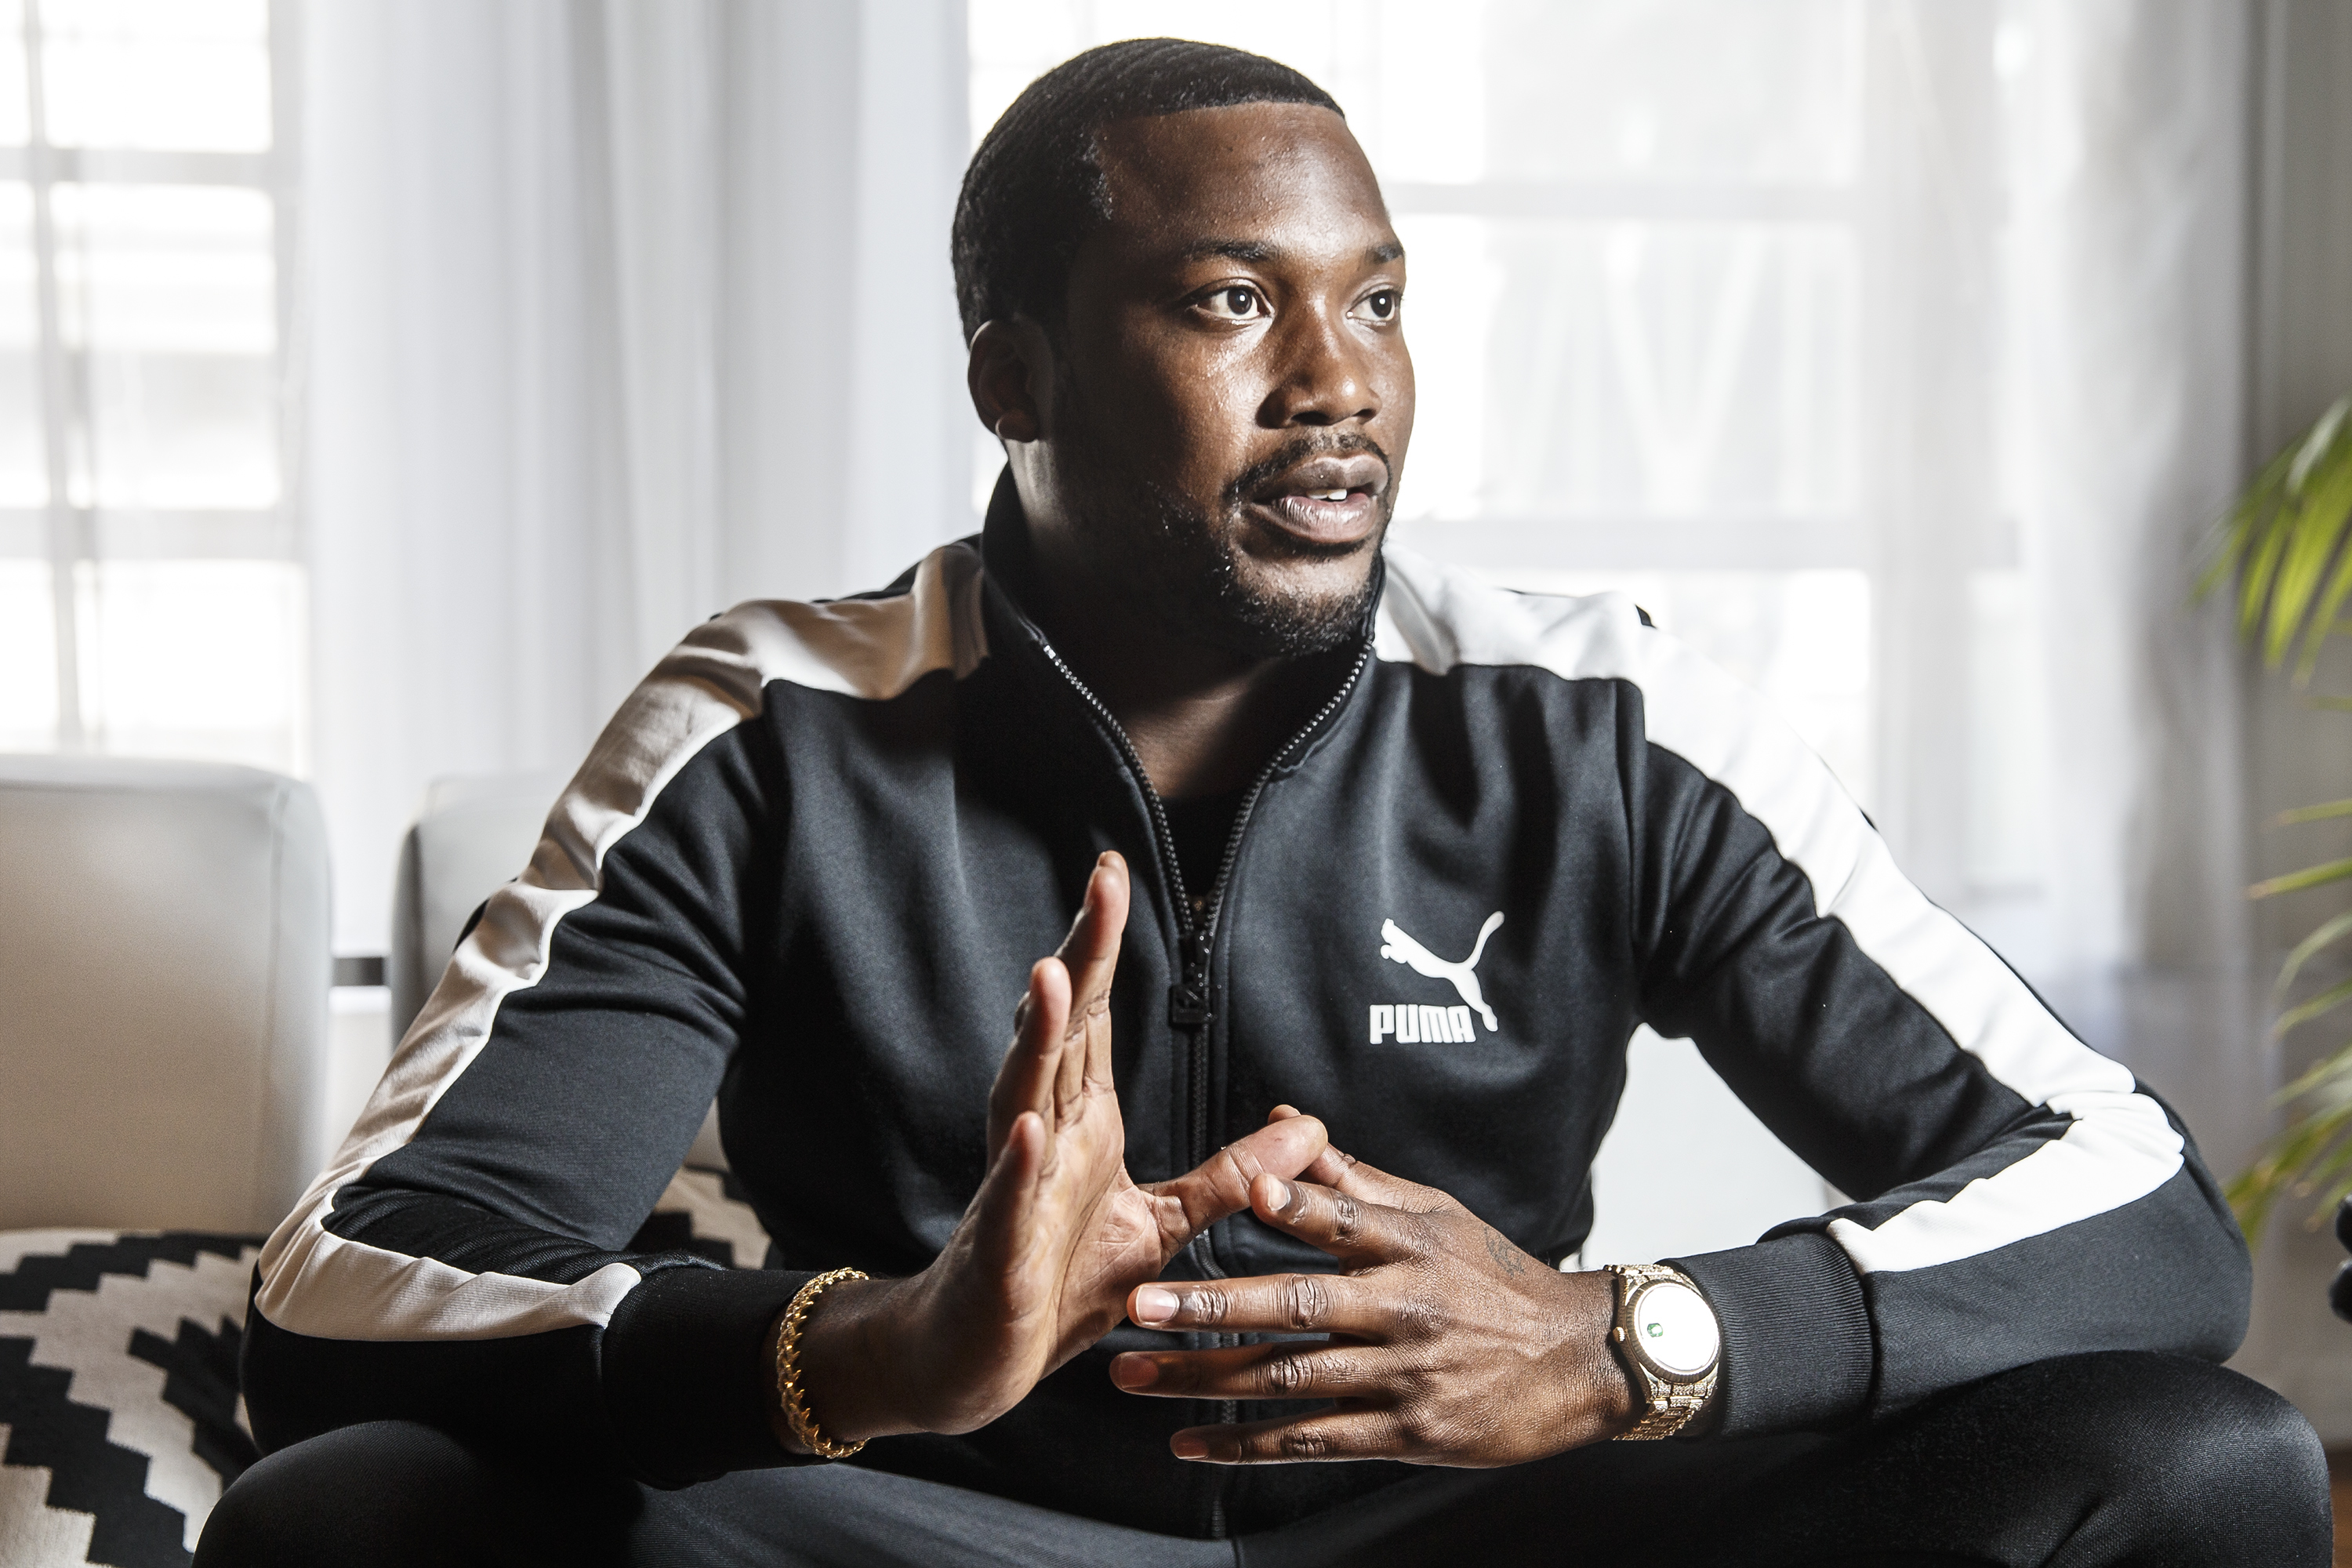 Philadelphia rap artist Meek Mill at the Power Plant Studio on August 1, 2018. MICHAEL BRYANT / Staff Photographer